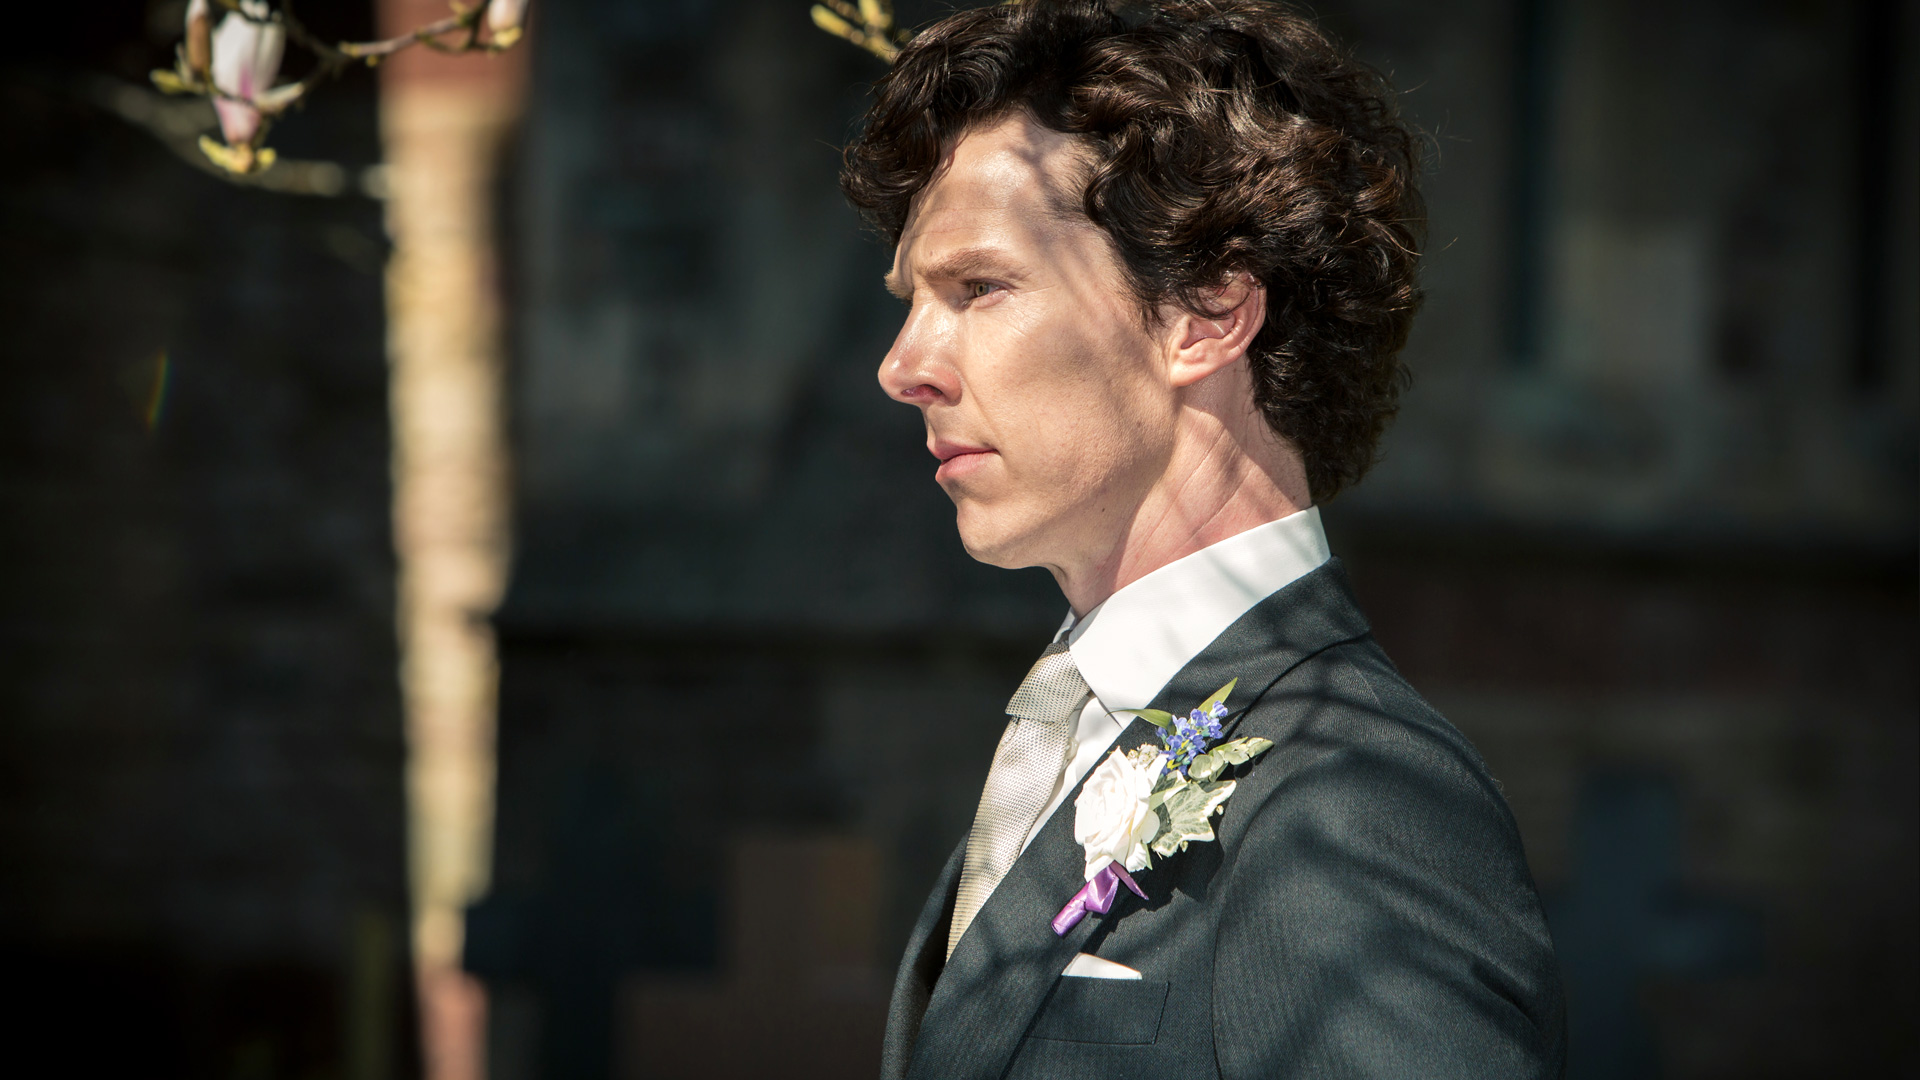 an analysis of the character of sherlock holmes in the television series sherlock Both cbs in the usa and the bbc have released television series based on the sherlock holmes stories but set in the modern day  character analysis sherlock.